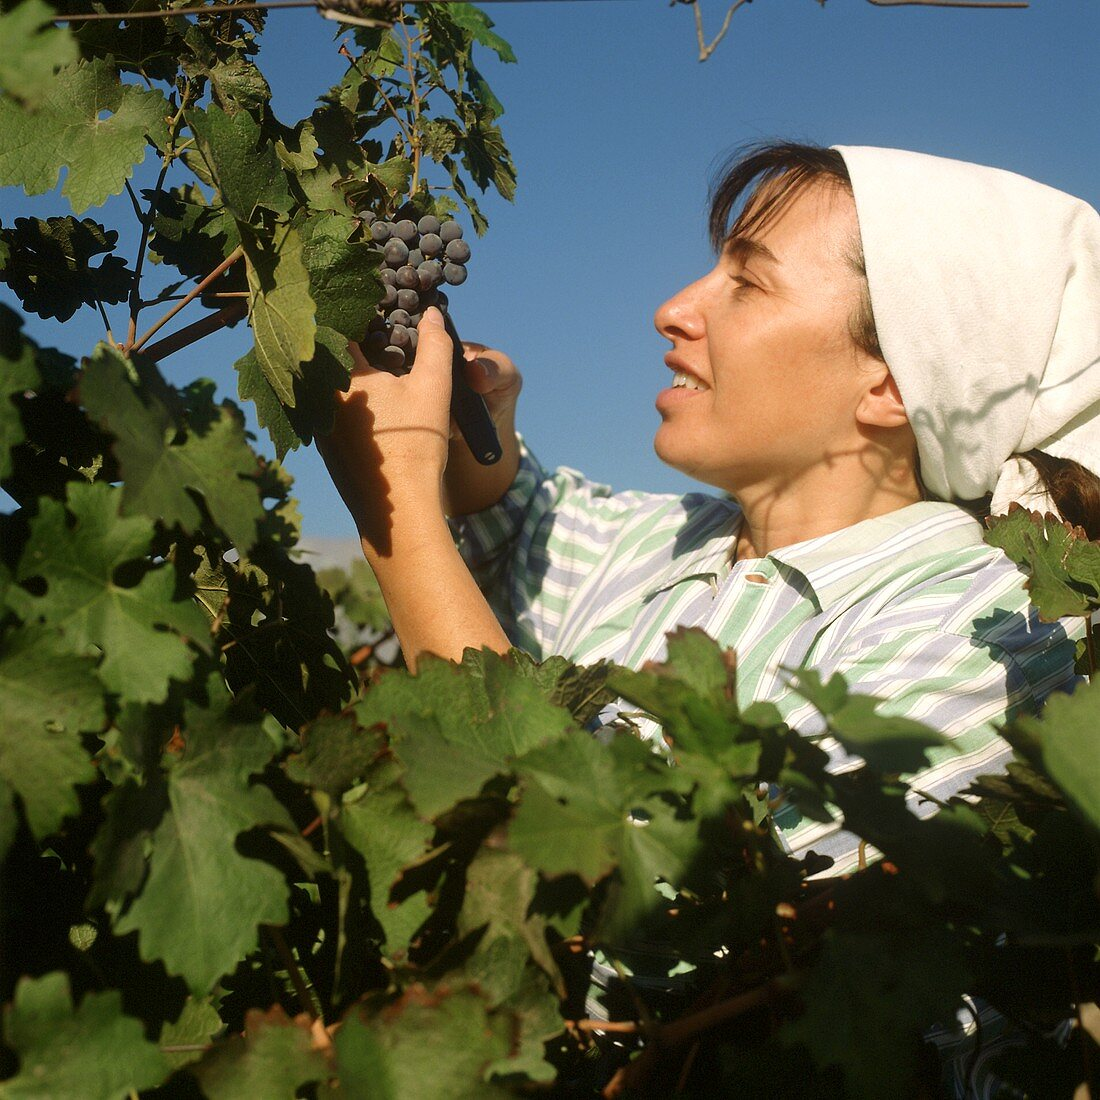 Vintage in the vineyards of Valle Central, Chile